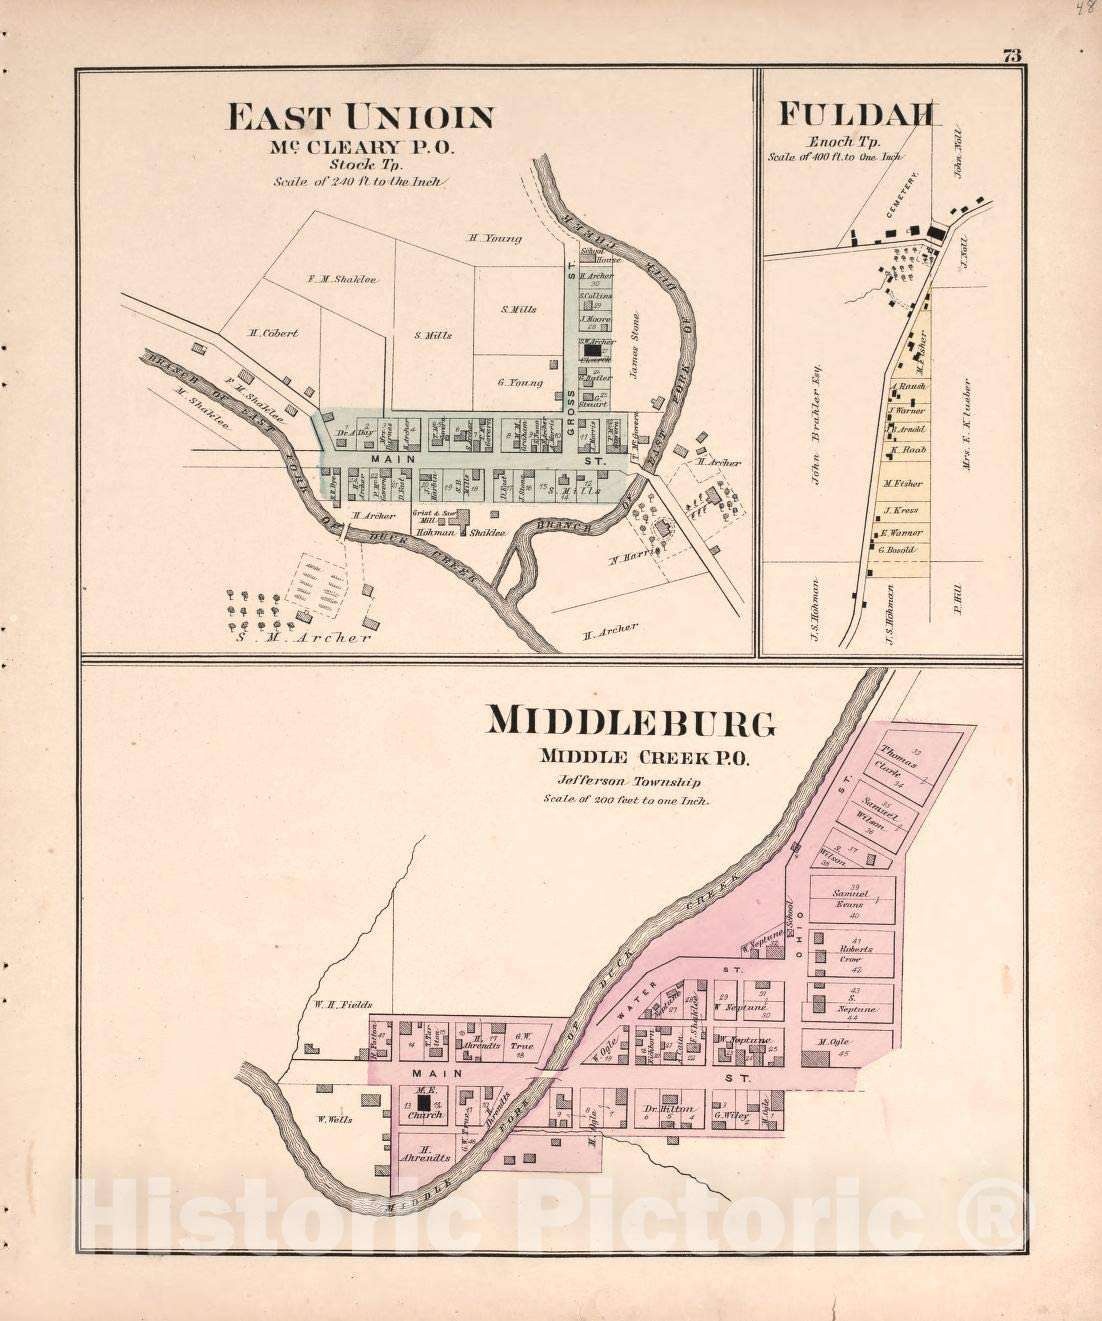 Historic 1876 Map - Illustrated Atlas of Noble County, Ohio : published from Expected surveys - Middleburg and Union - Centennial Atlas of Noble County, Ohio 44in x 53in